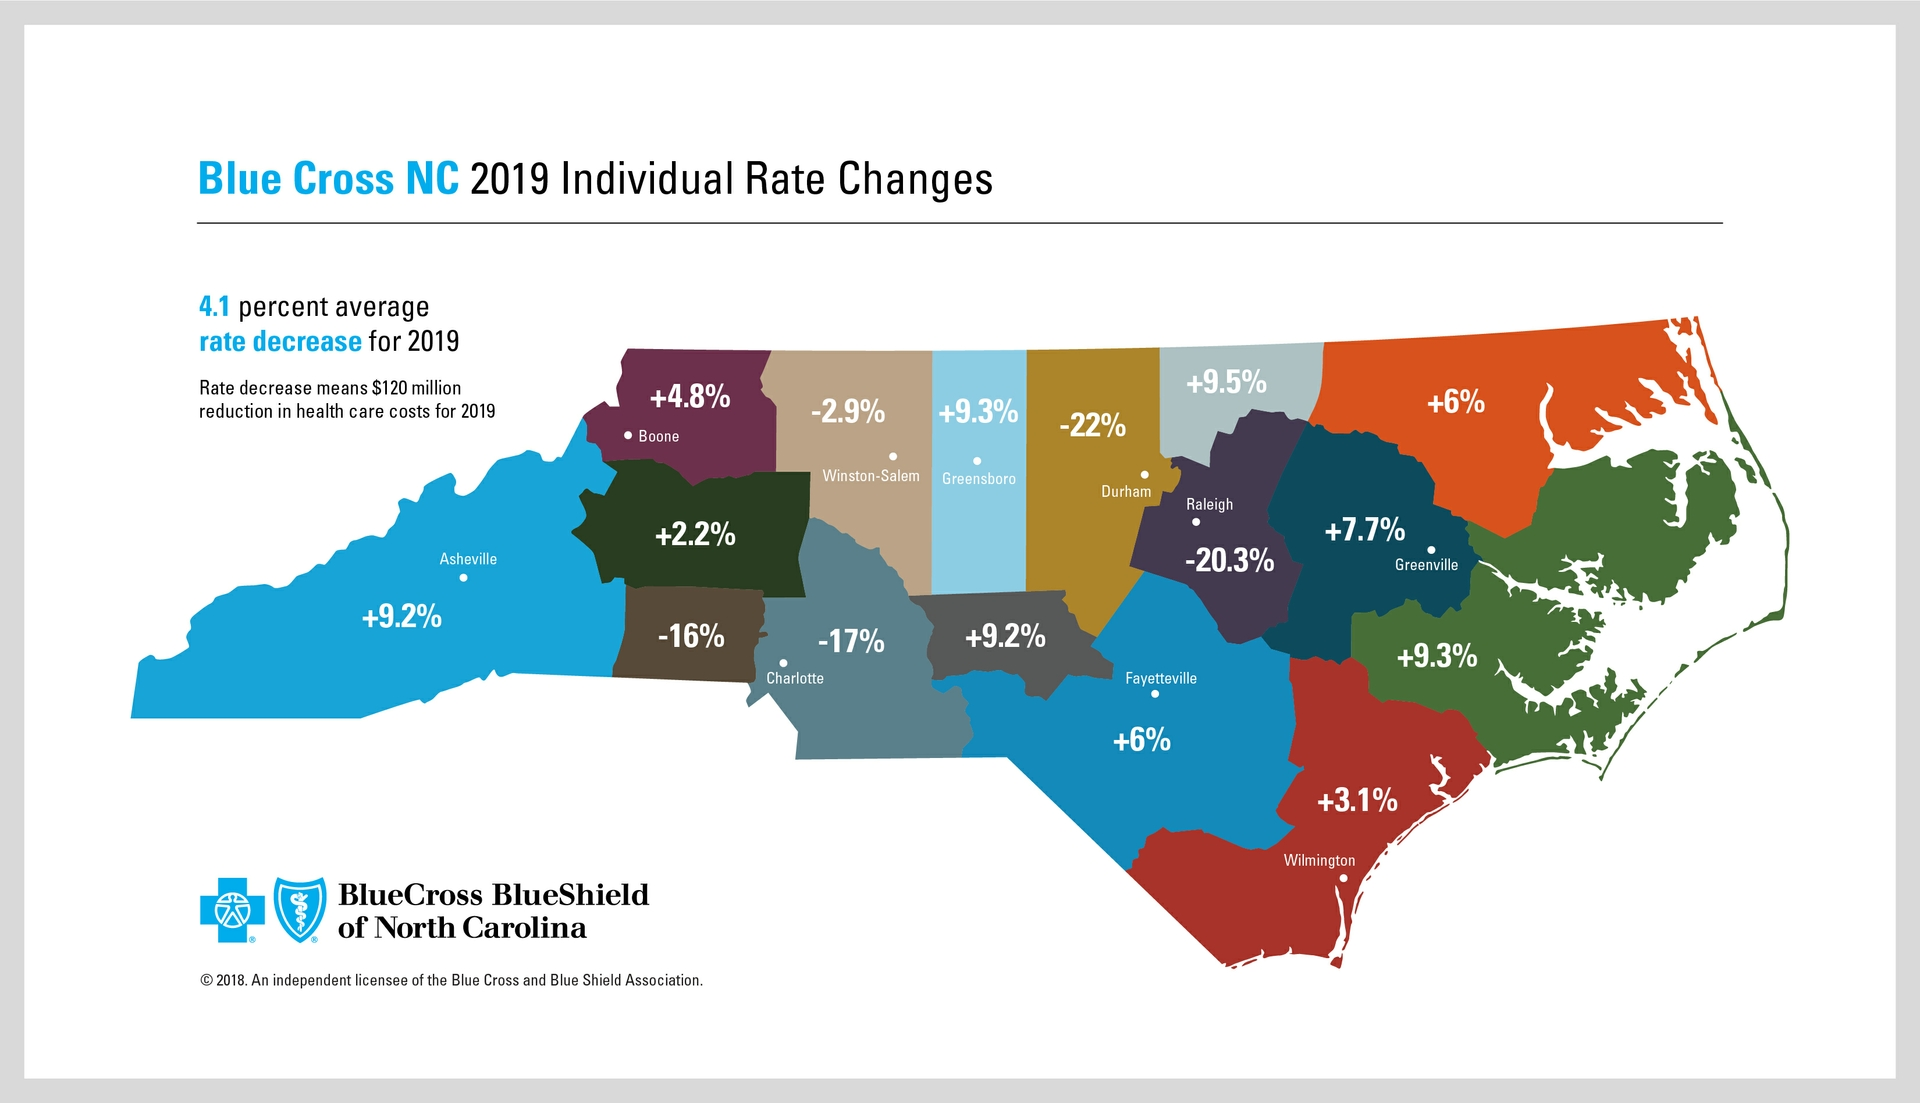 BLUE CROSS NC 4 1 PERCENT AVERAGE RATE DECREASE APPROVED FOR 2019